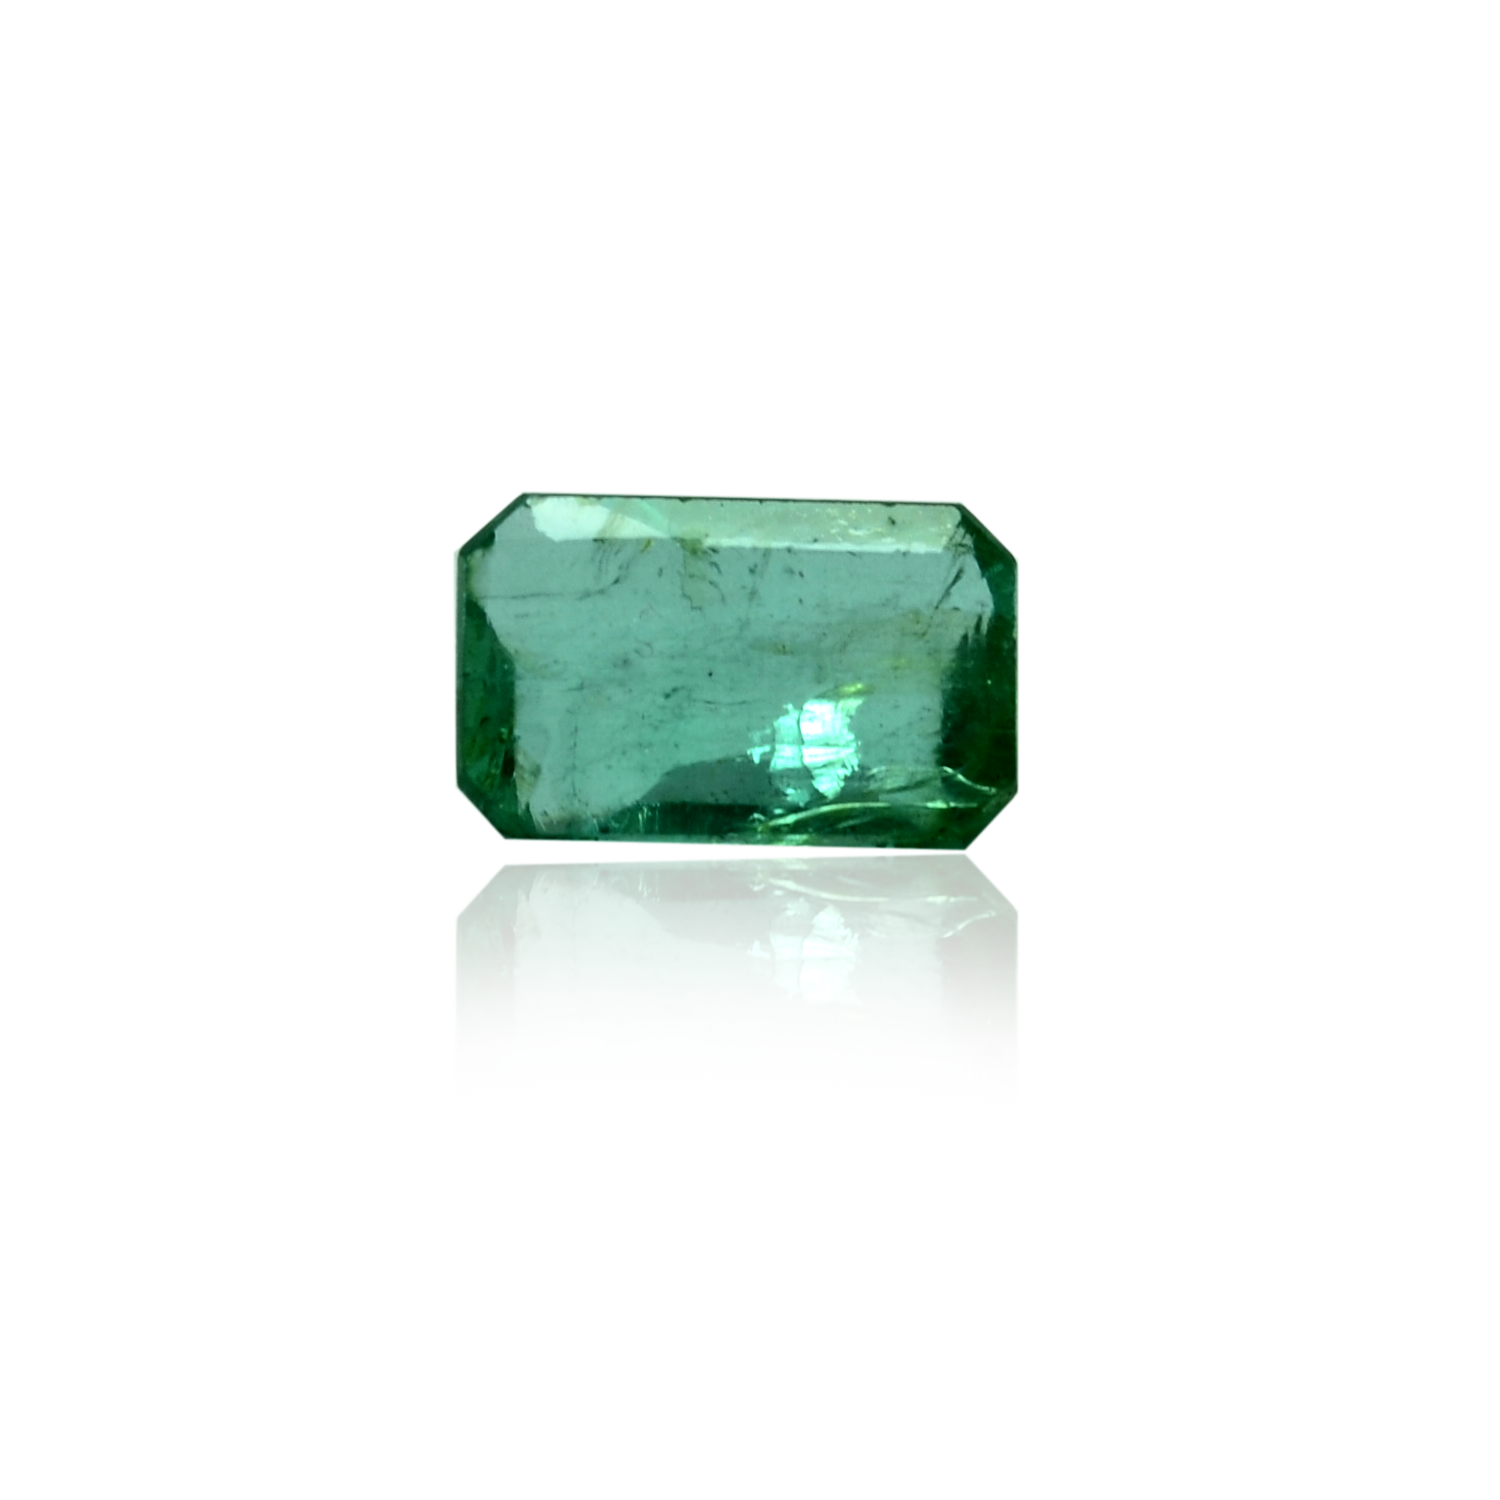 5.40 CARAT, EMERALD MIXED CUT NATURAL EMERALD